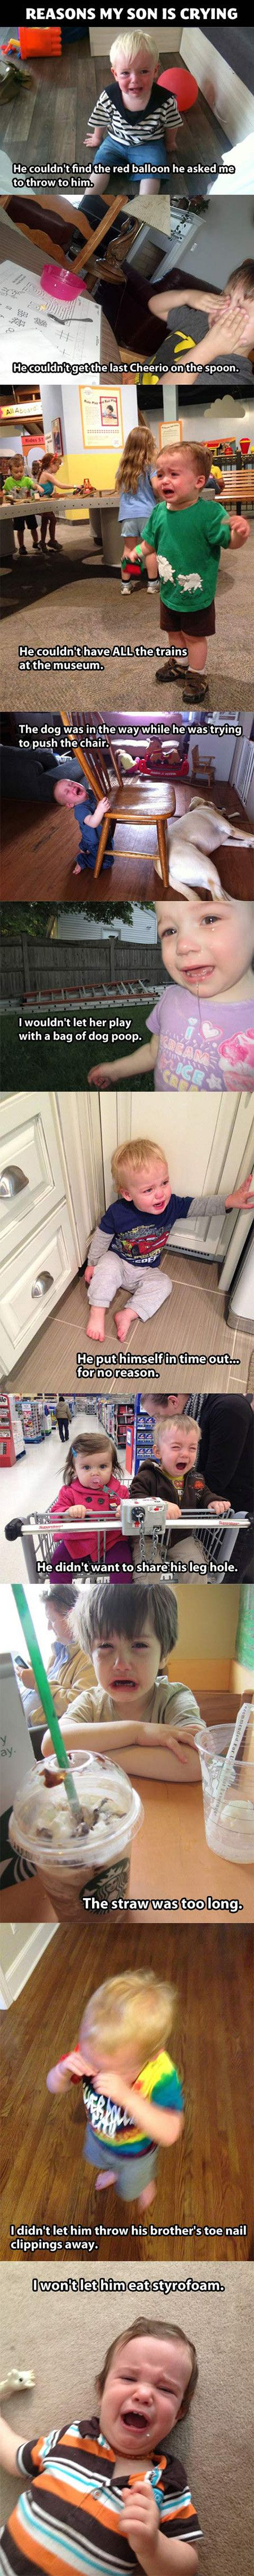 hahaha Why is your child crying? This is better than dog shaming lol